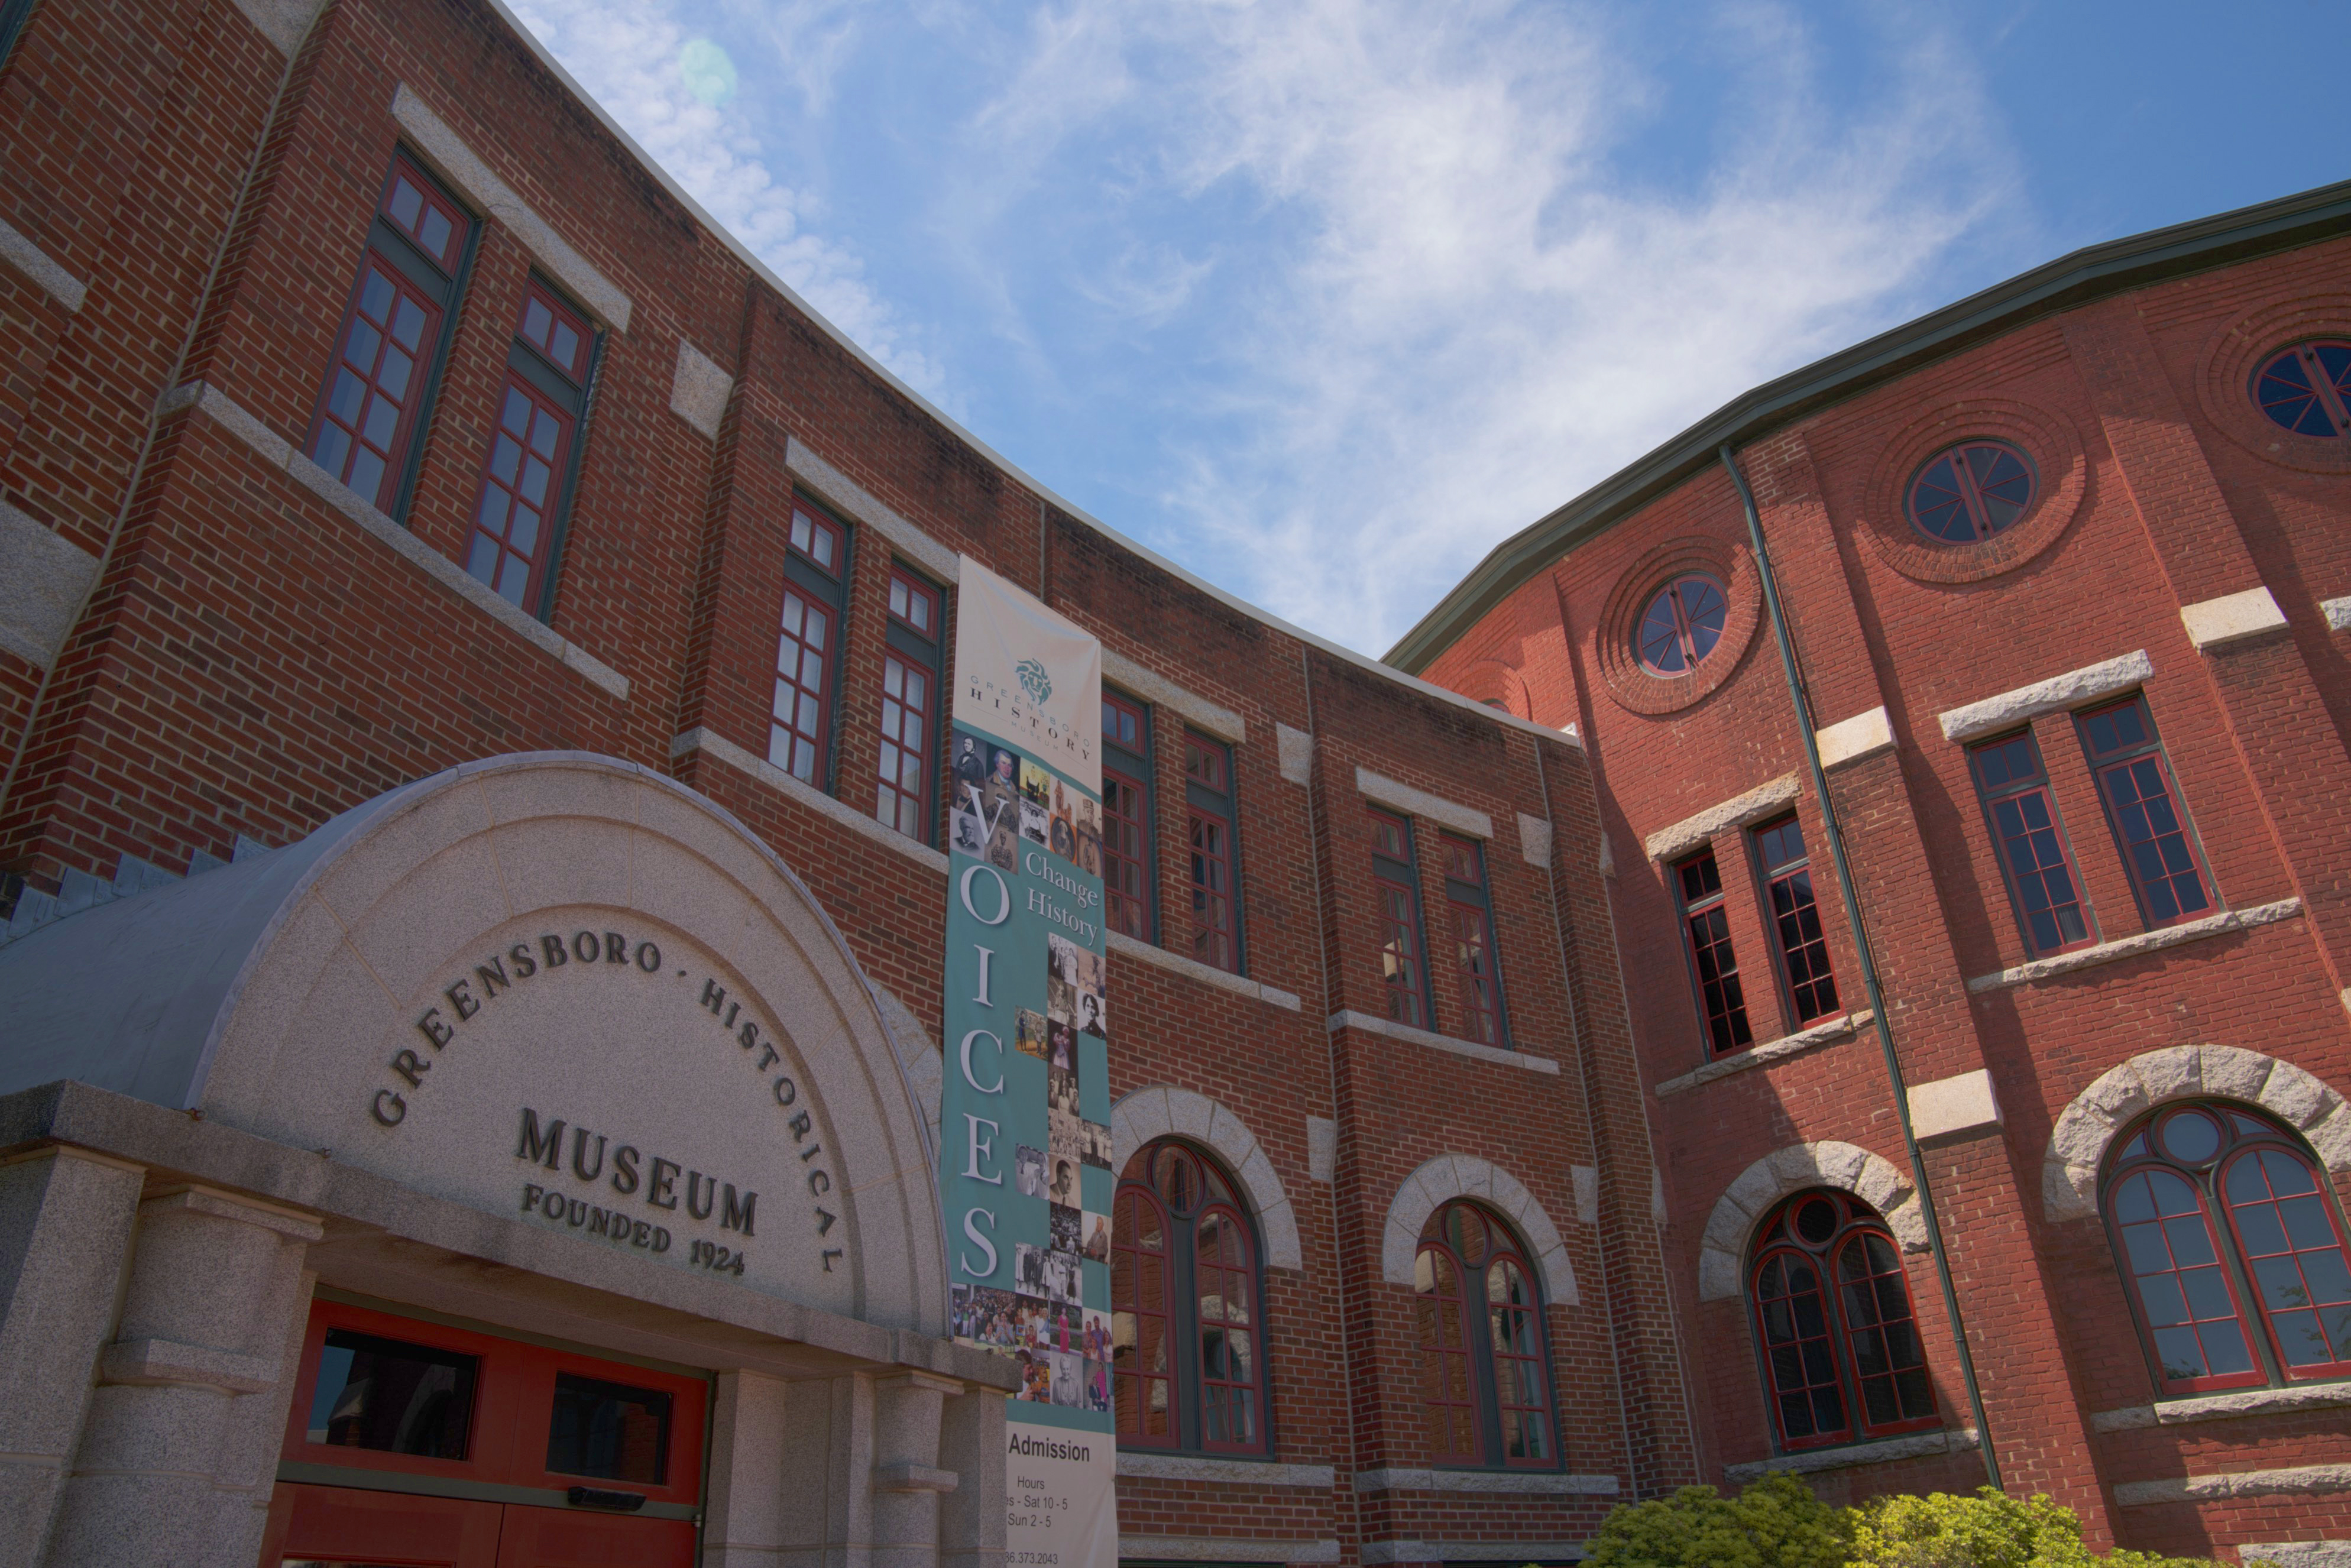 Entrance to Greensboro History Musem